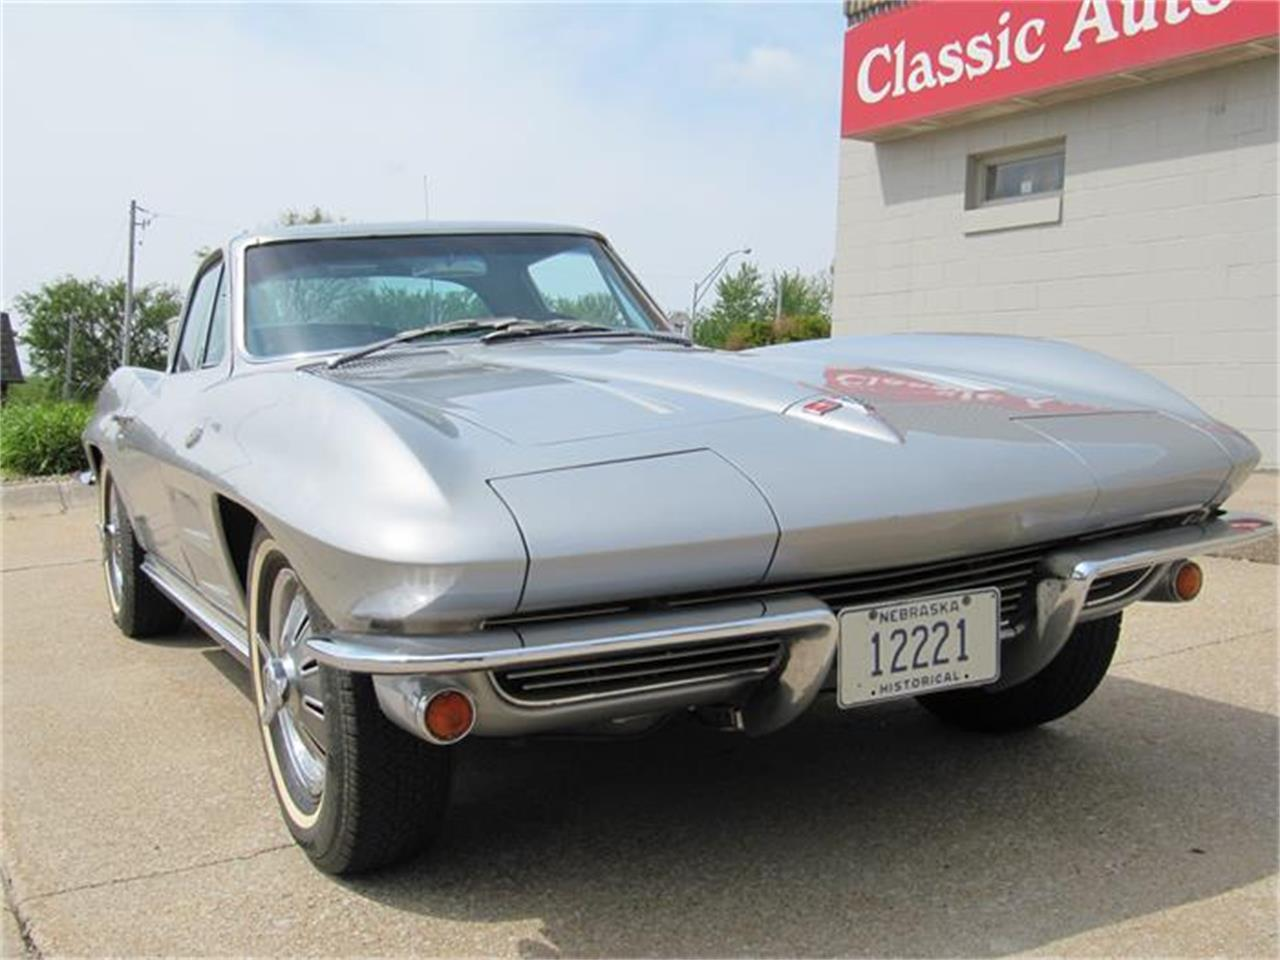 Classic Cars Sales Omaha